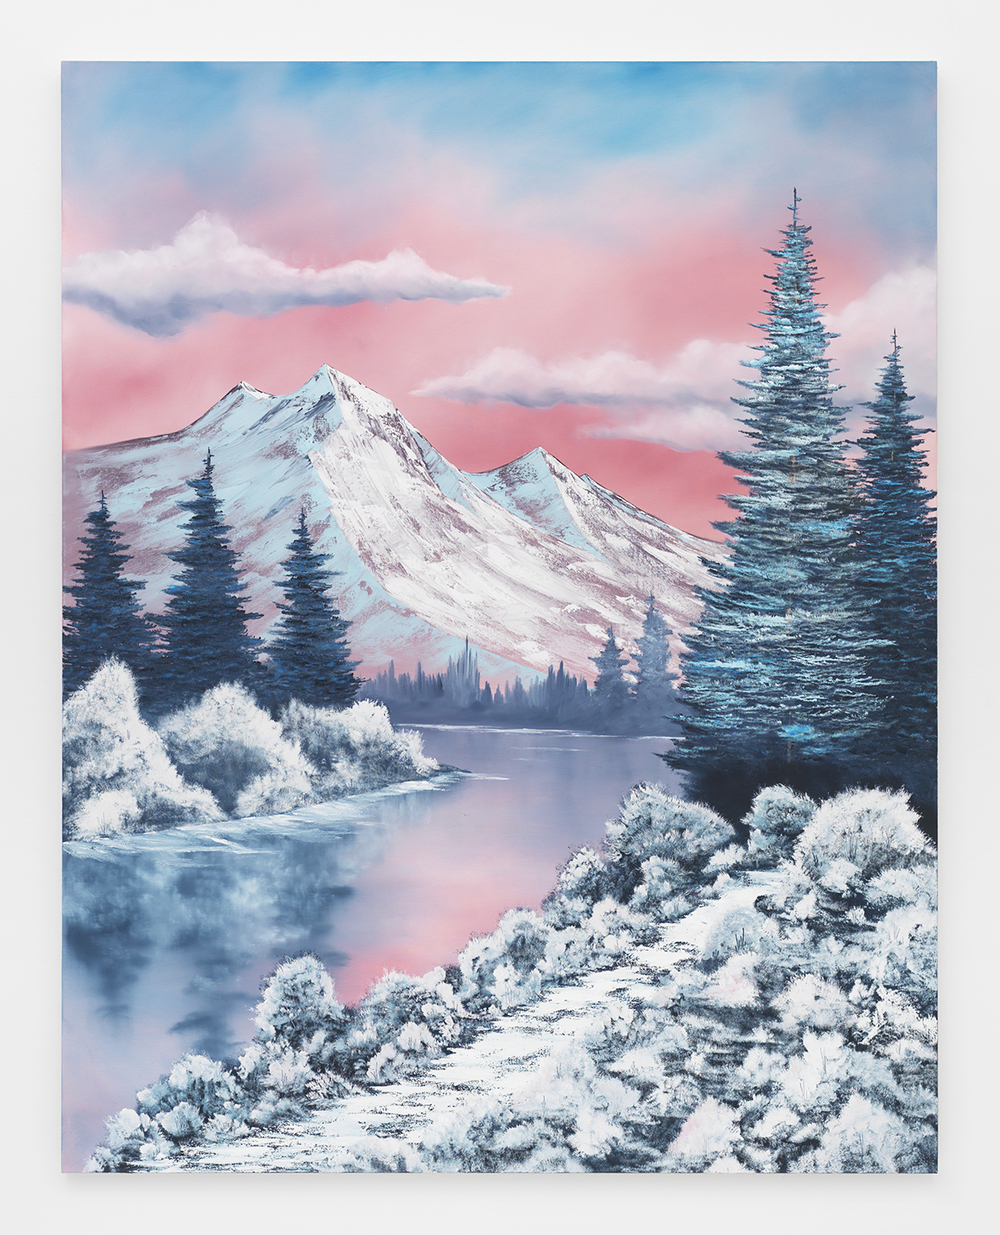 Winter Paradise, 2014 Oil on canvas 84 x 66 inches